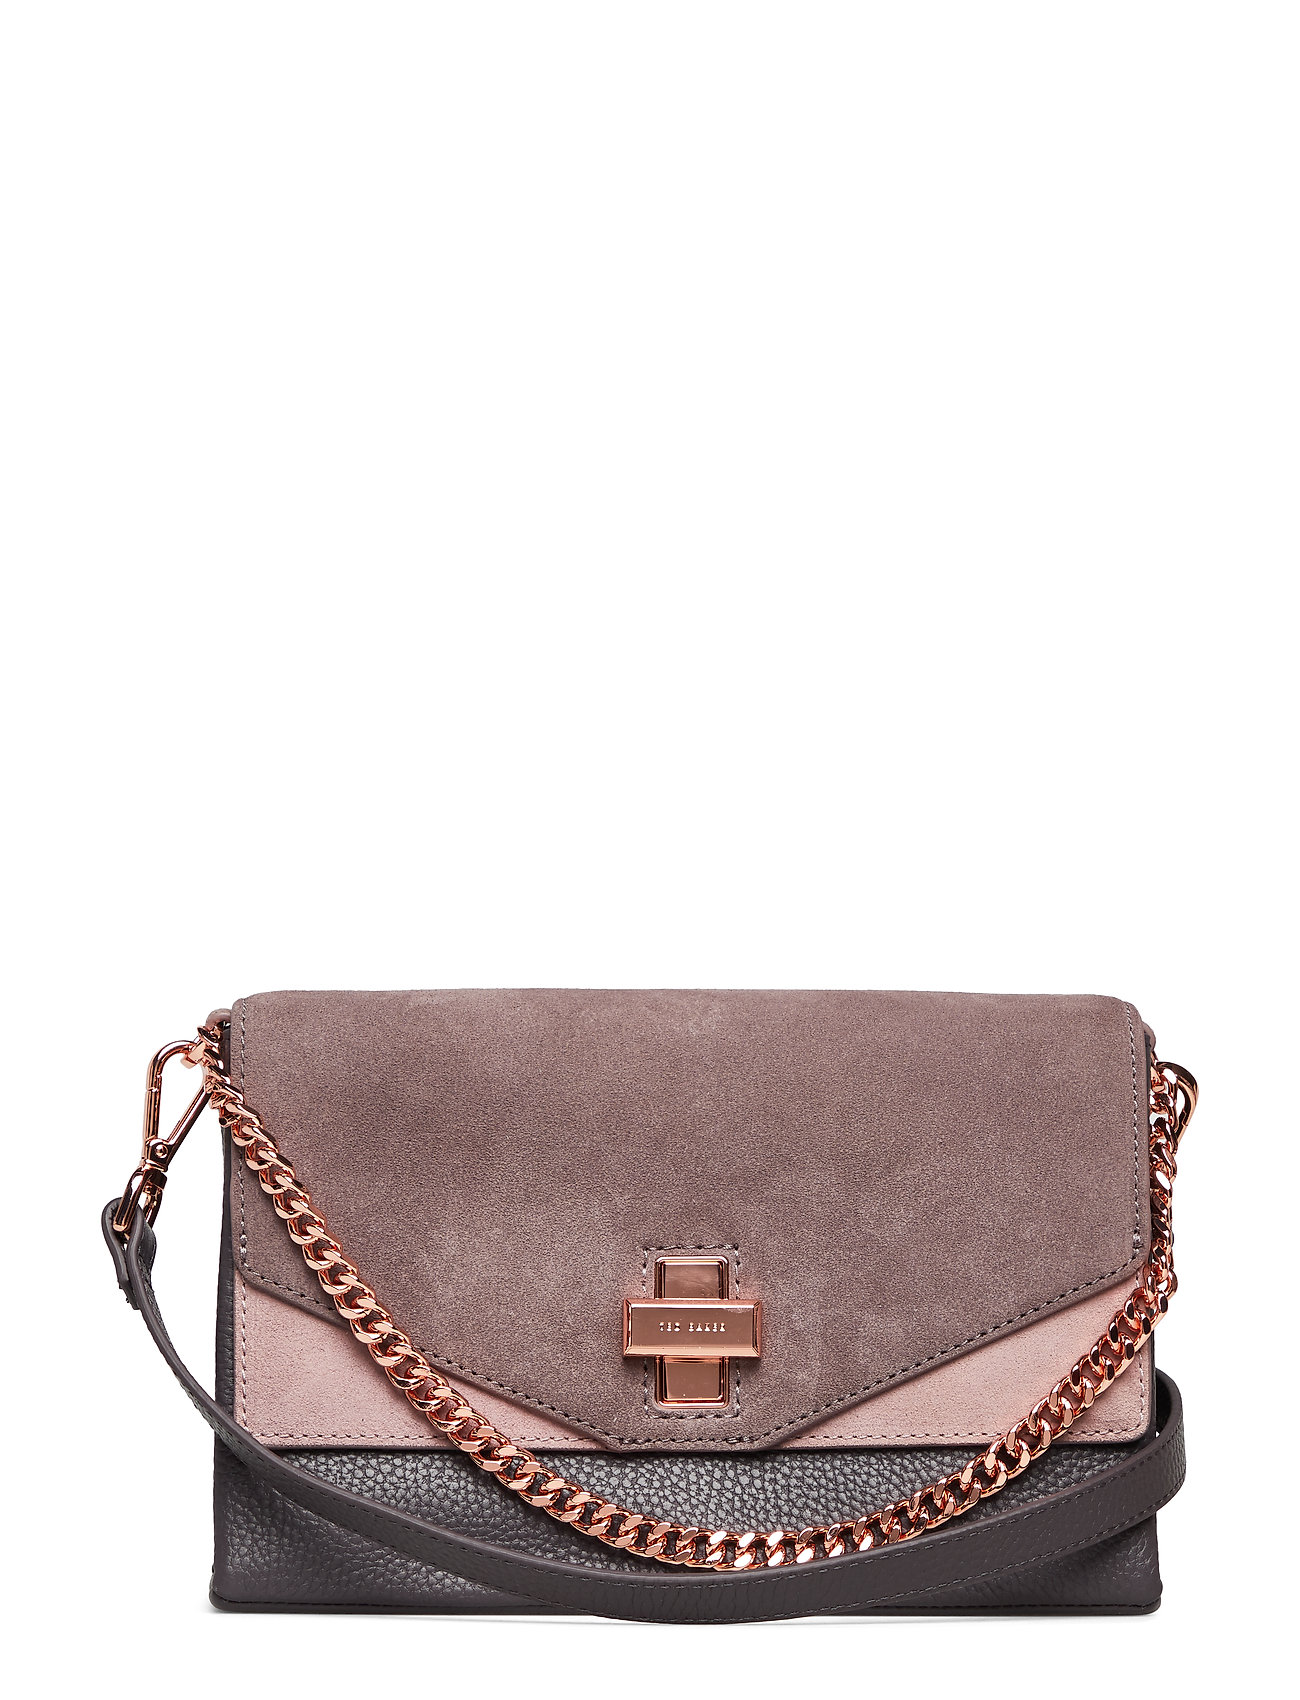 TED BAKER Vierra Bags Small Shoulder Bags/crossbody Bags Braun TED BAKER